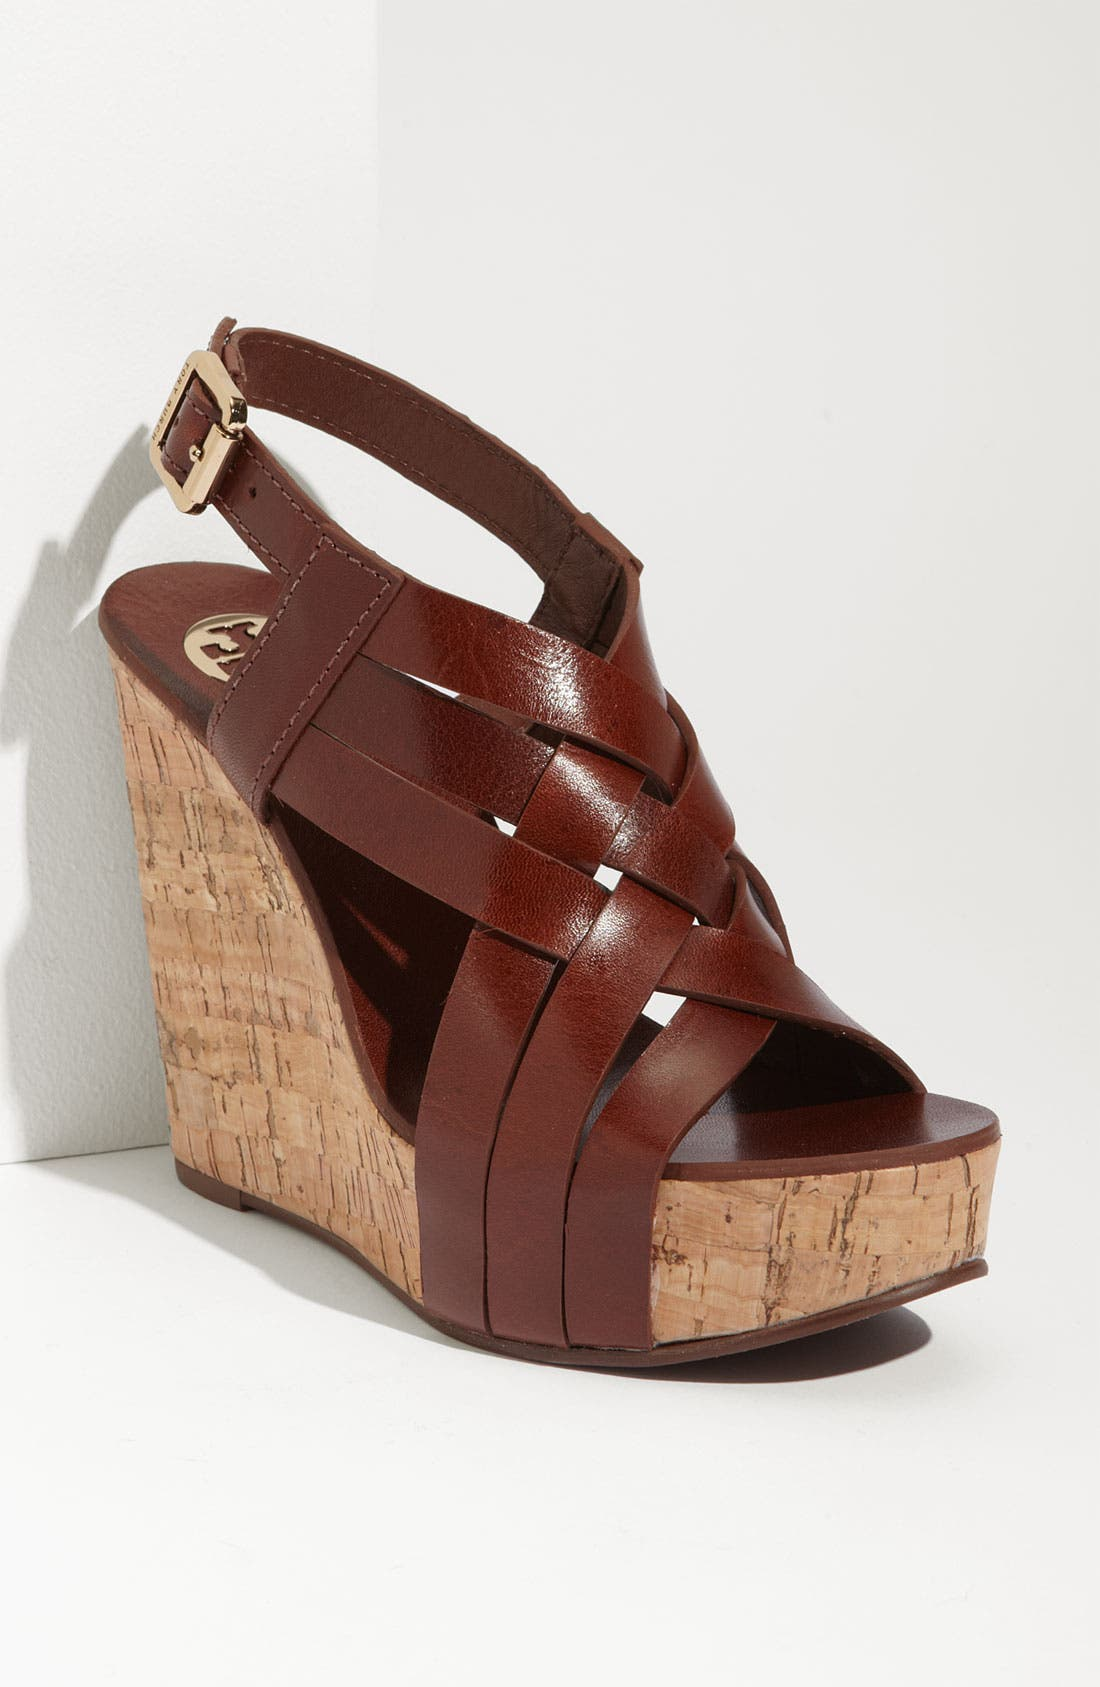 Alternate Image 1 Selected - Tory Burch 'Ace' Wedge Sandal